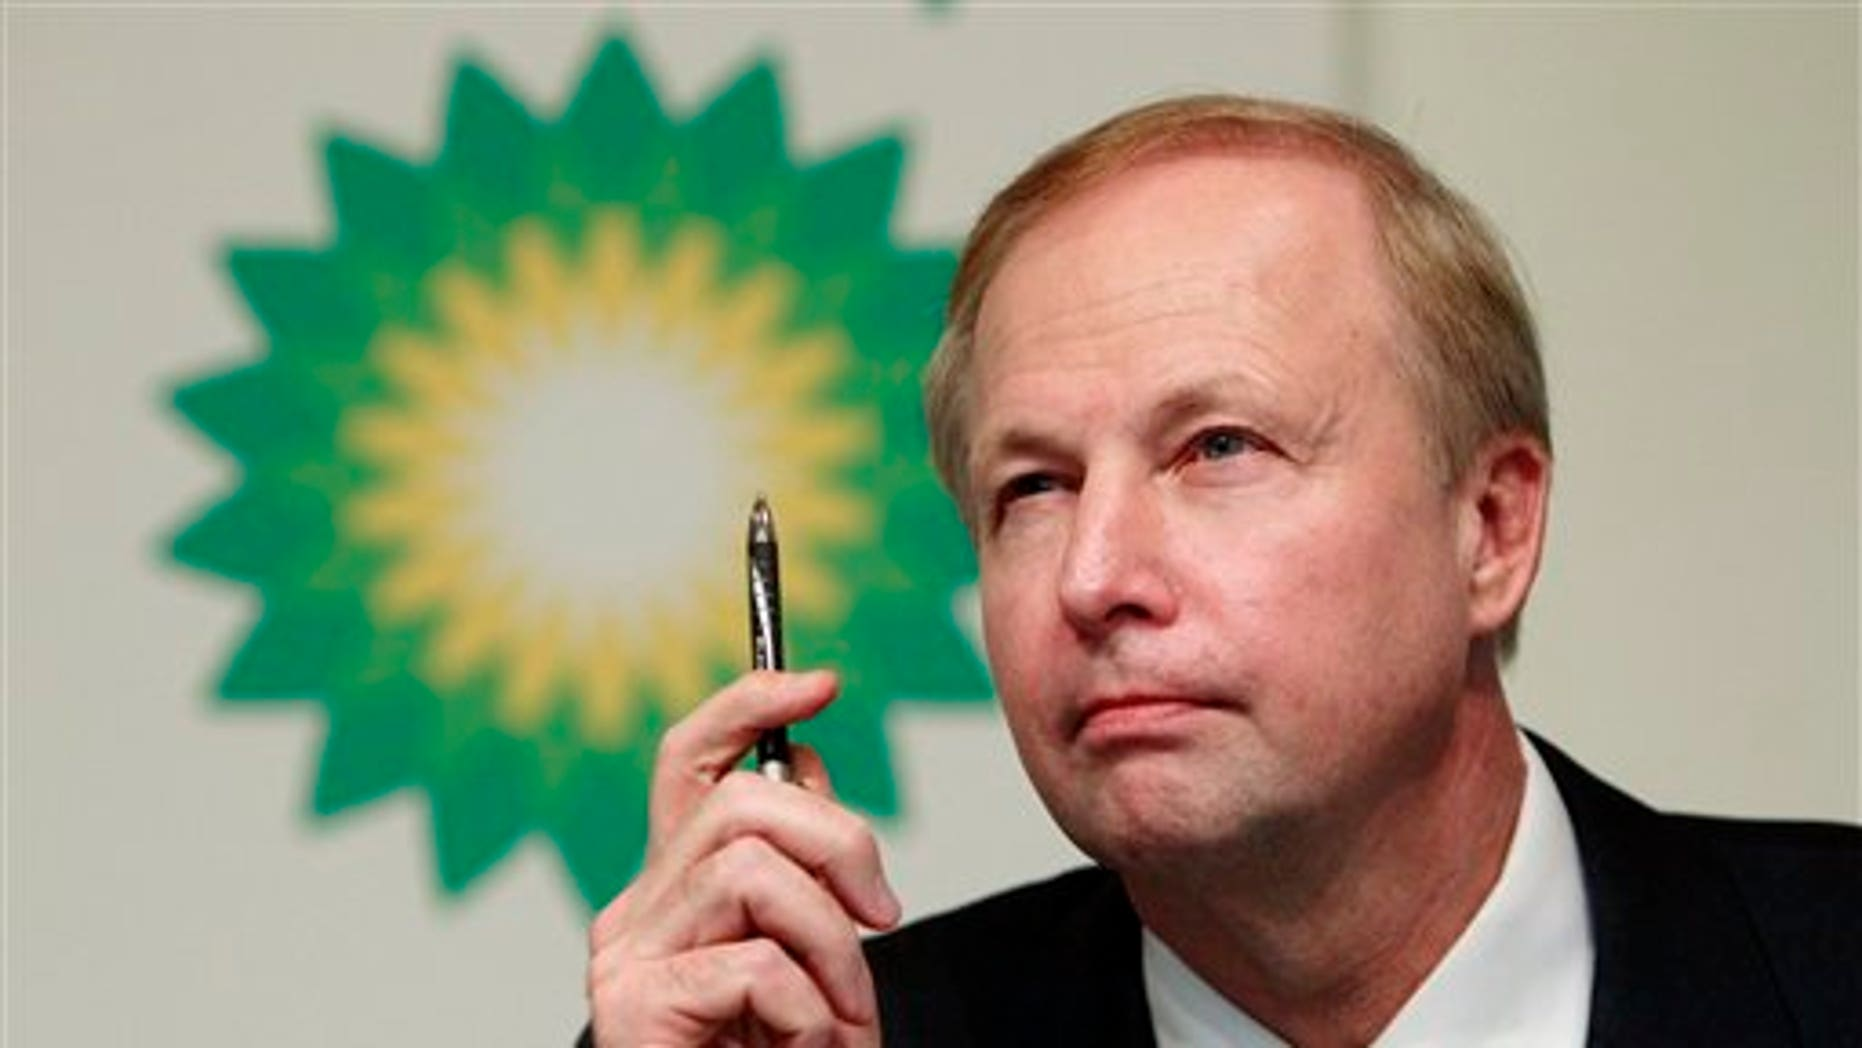 Nov. 2, 2010: BP PLC Chief Executive Bob Dudley speaks at a news conference in London. Dudley, who grew up in Mississippi and was the first American ever to lead the British company, took over in October after Tony Hayward was ousted.